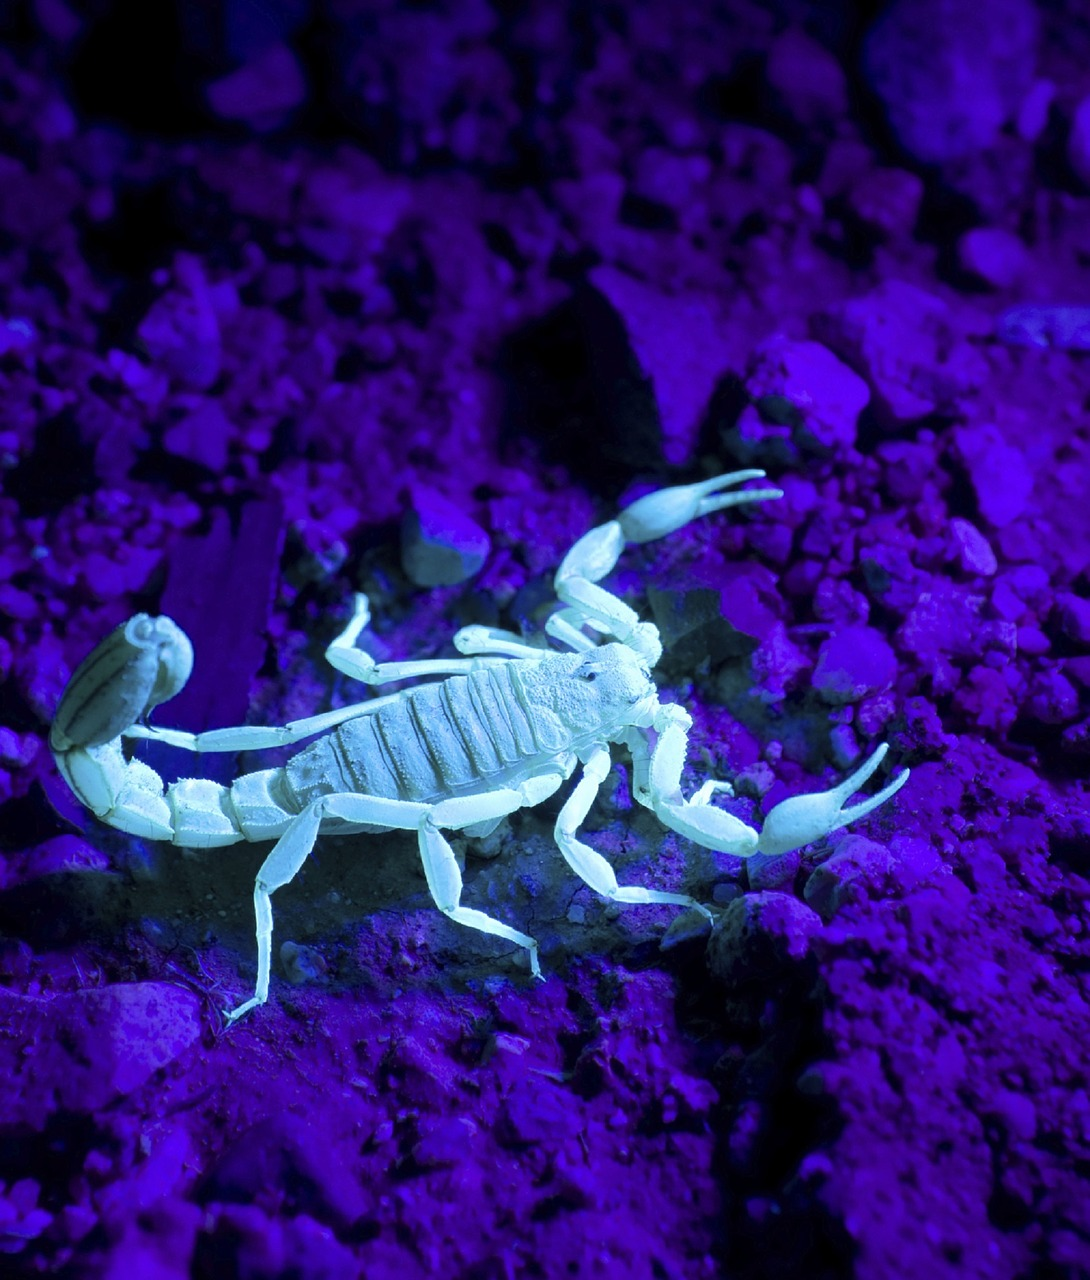 scorpion wildlife wild free photo